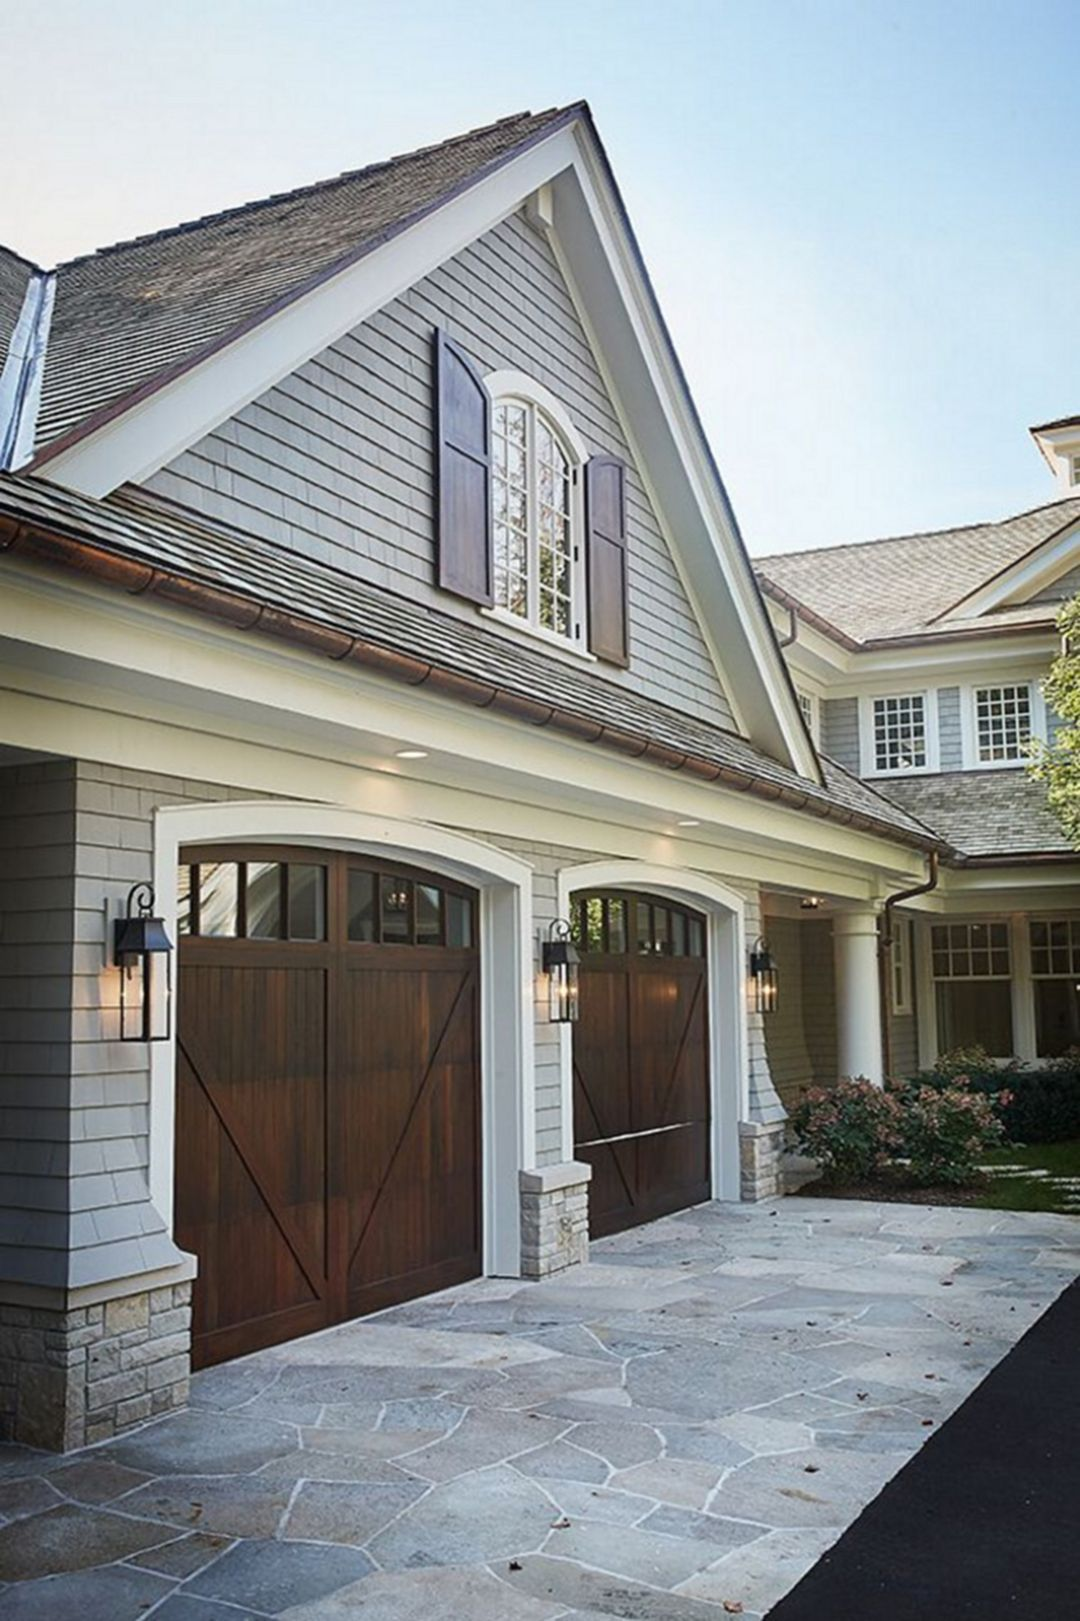 15 Most Unique Home Exterior with Stone Ideas For Amazing ... on Garage Color Ideas  id=86625